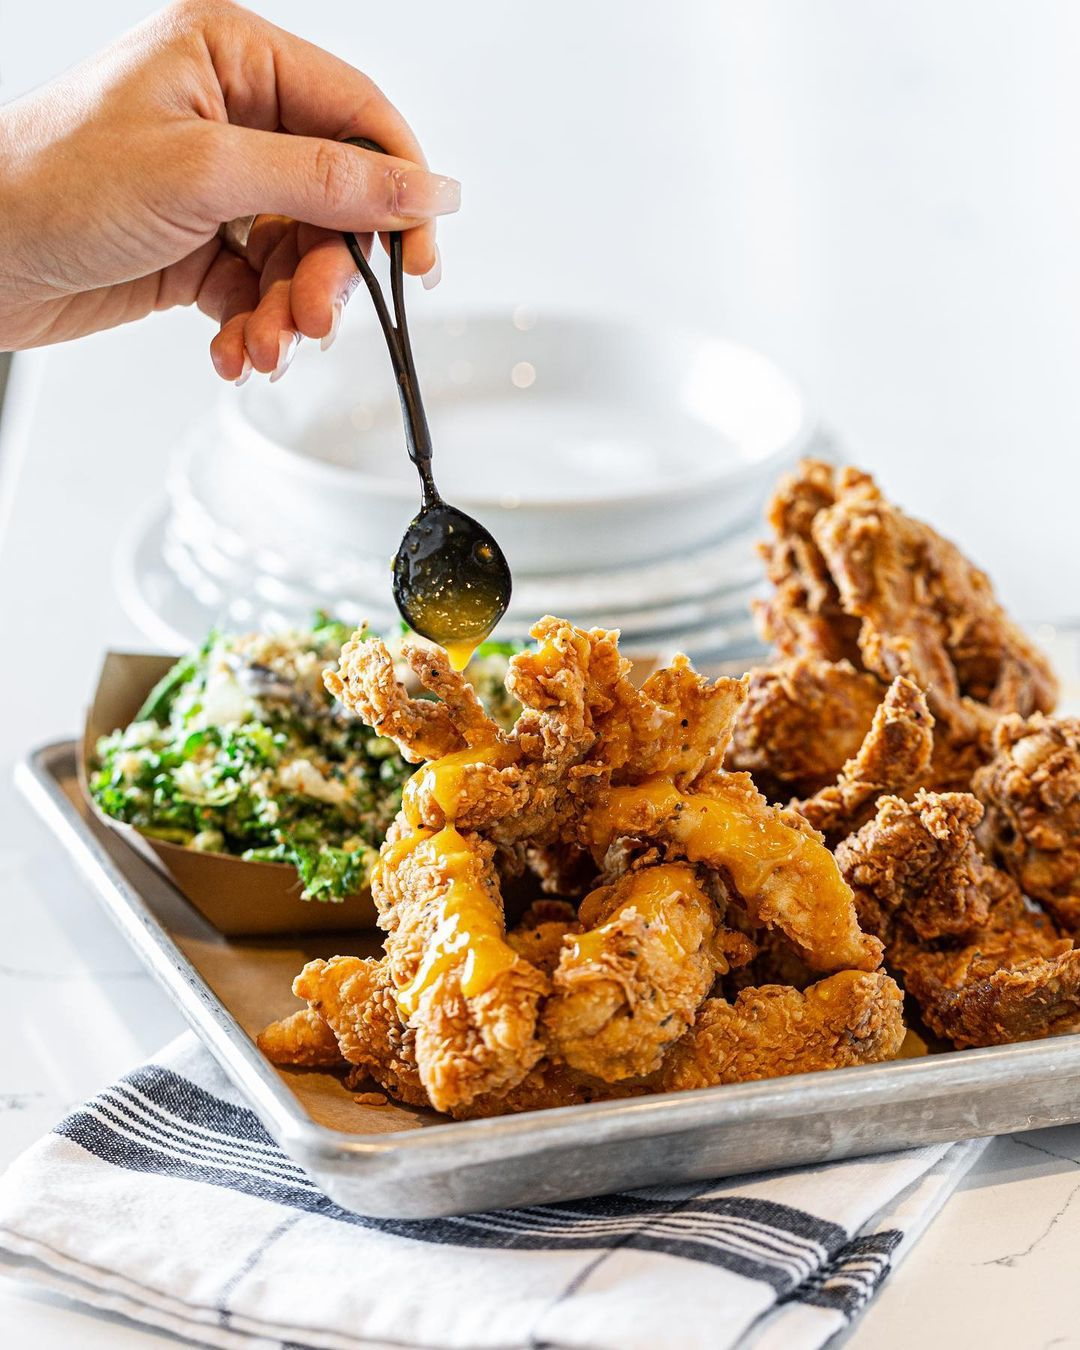 Duck fat fried chicken served on a metal tray lined with paper